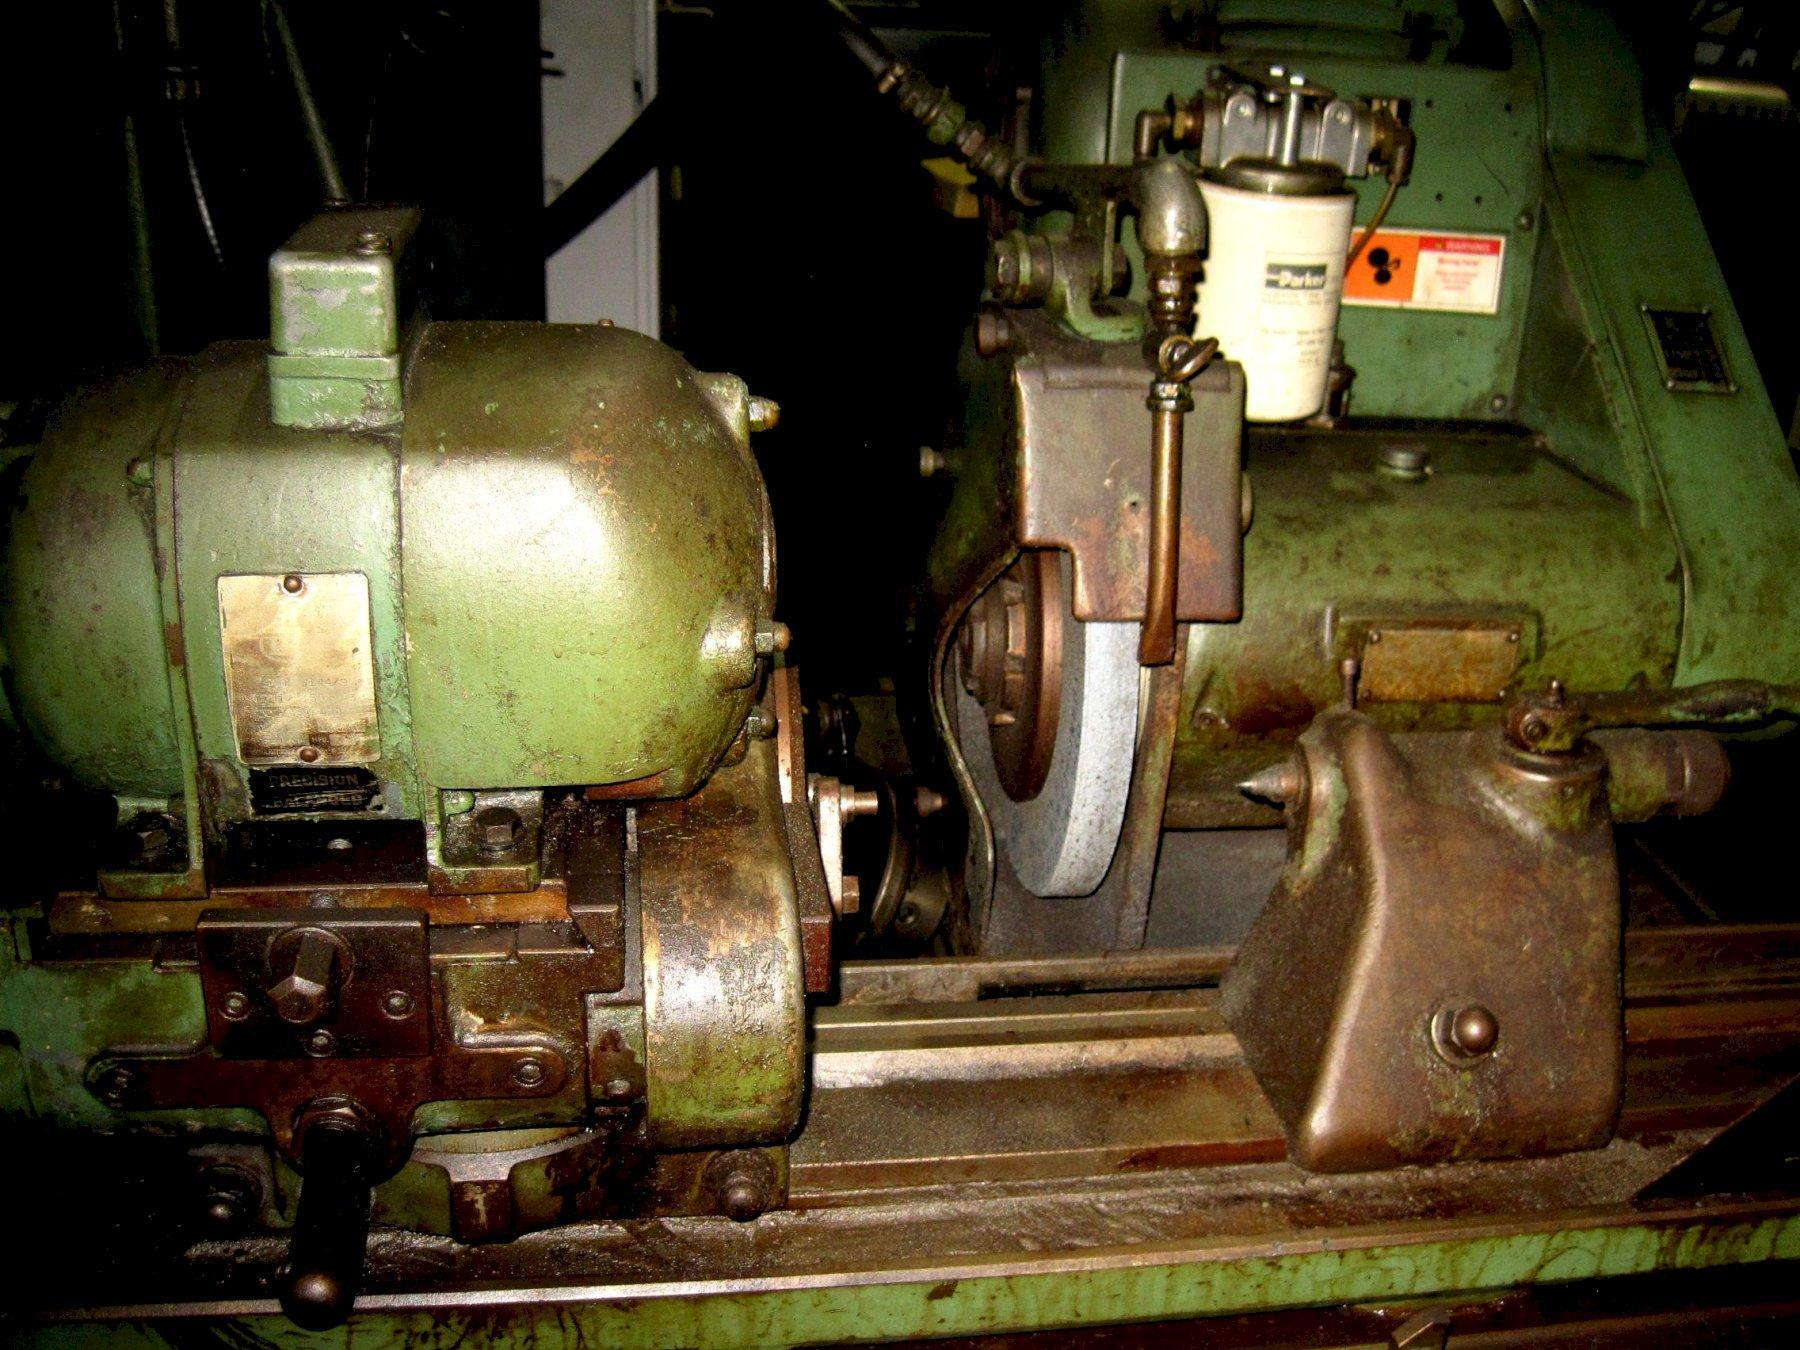 Jones & Shipman Model 1310 Universal Cylindrical Grinder